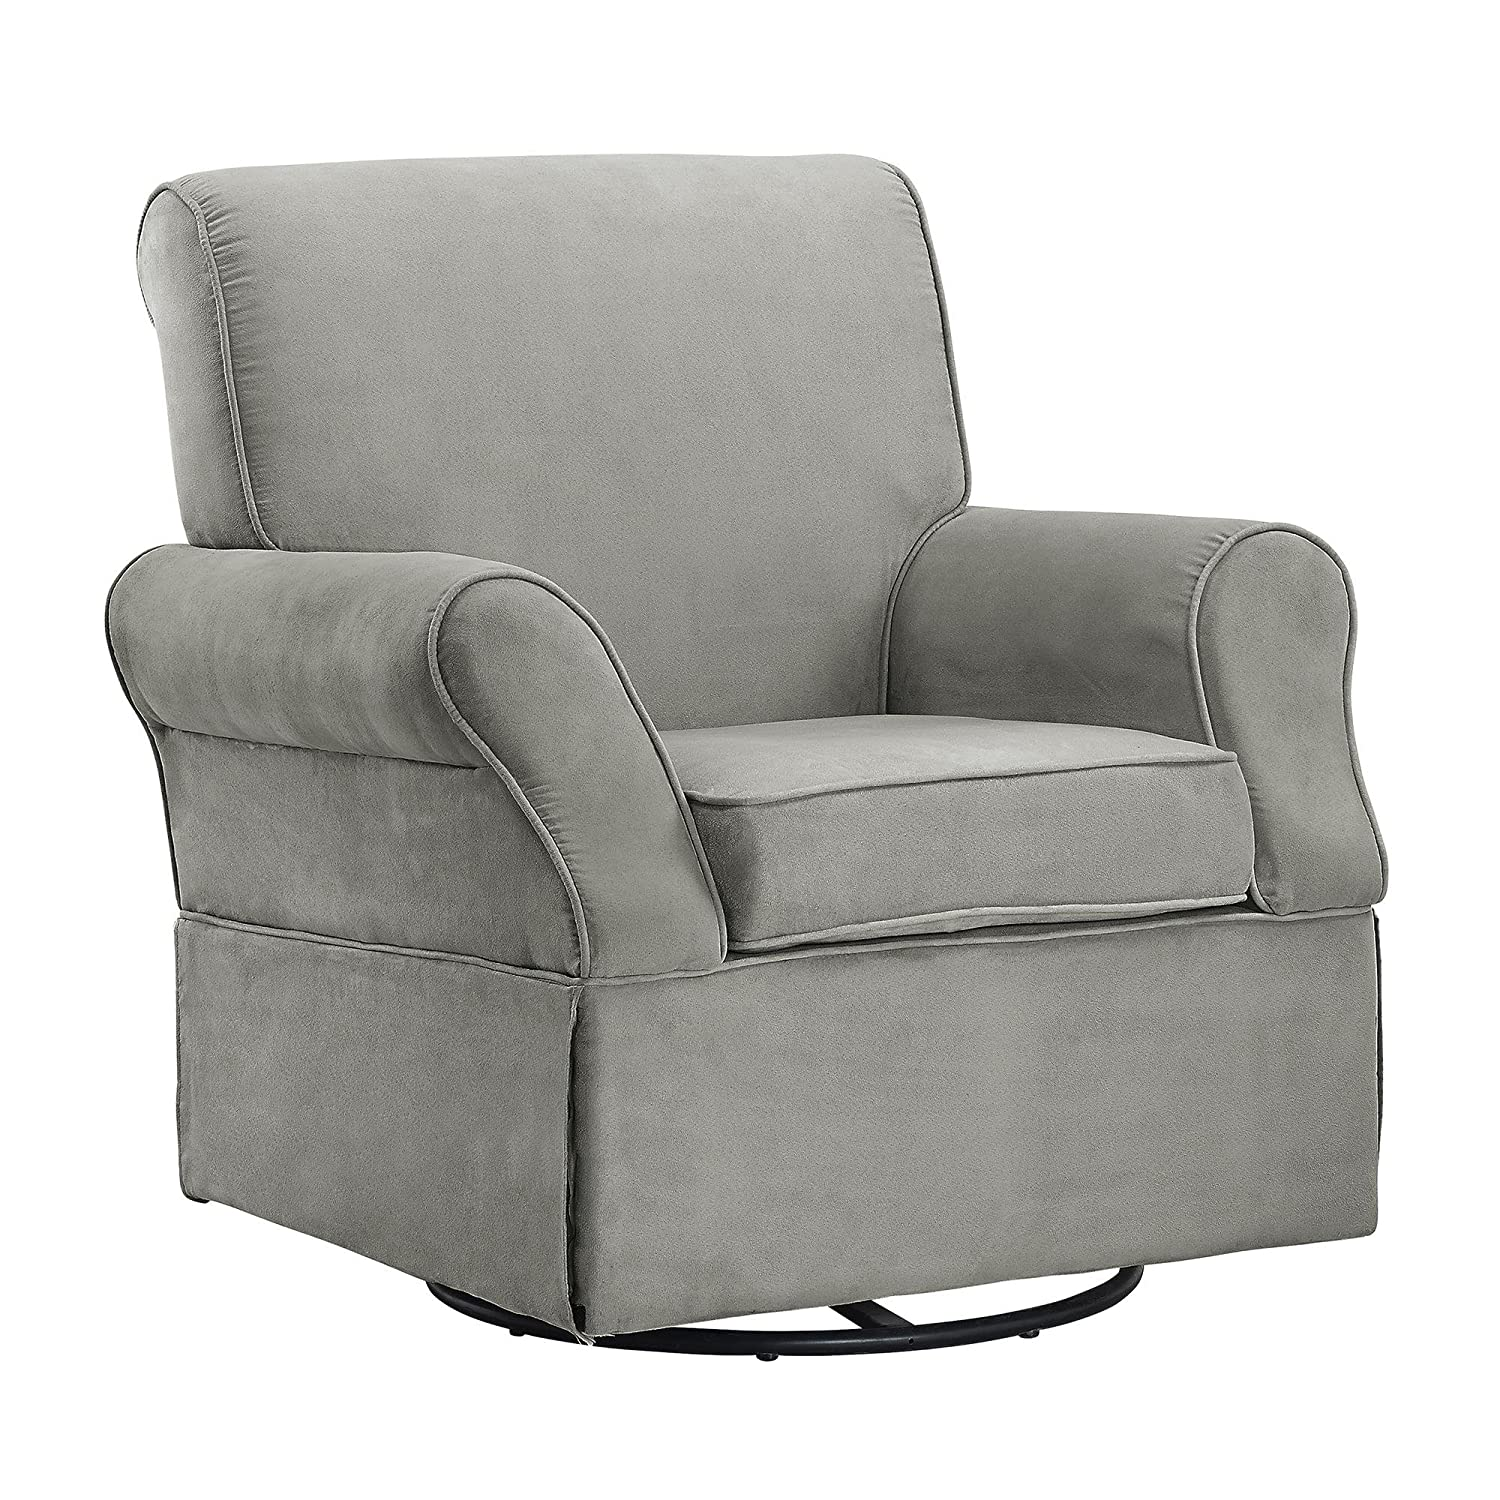 Attrayant Amazon.com: Baby Relax The Kelcie Nursery Swivel Glider Chair And Ottoman  Set, Grey: Baby